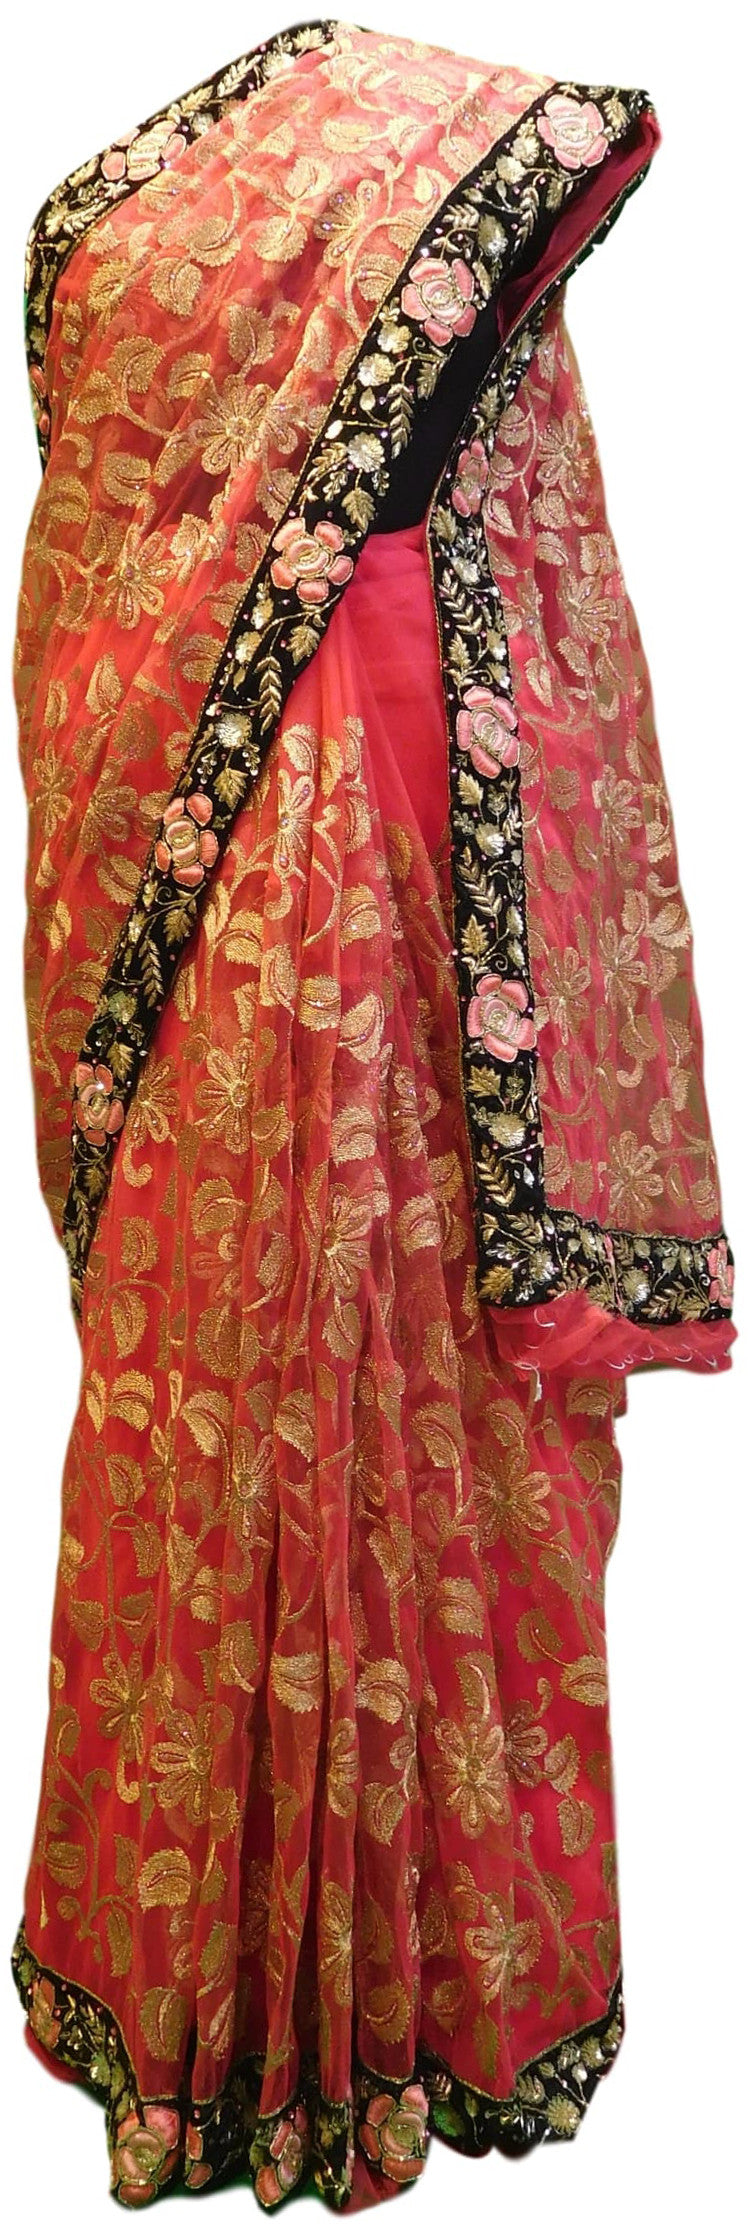 Pink Designer Net Hand Embroidery Zari Work Sari Saree With Heavy Velvet Heavy Border